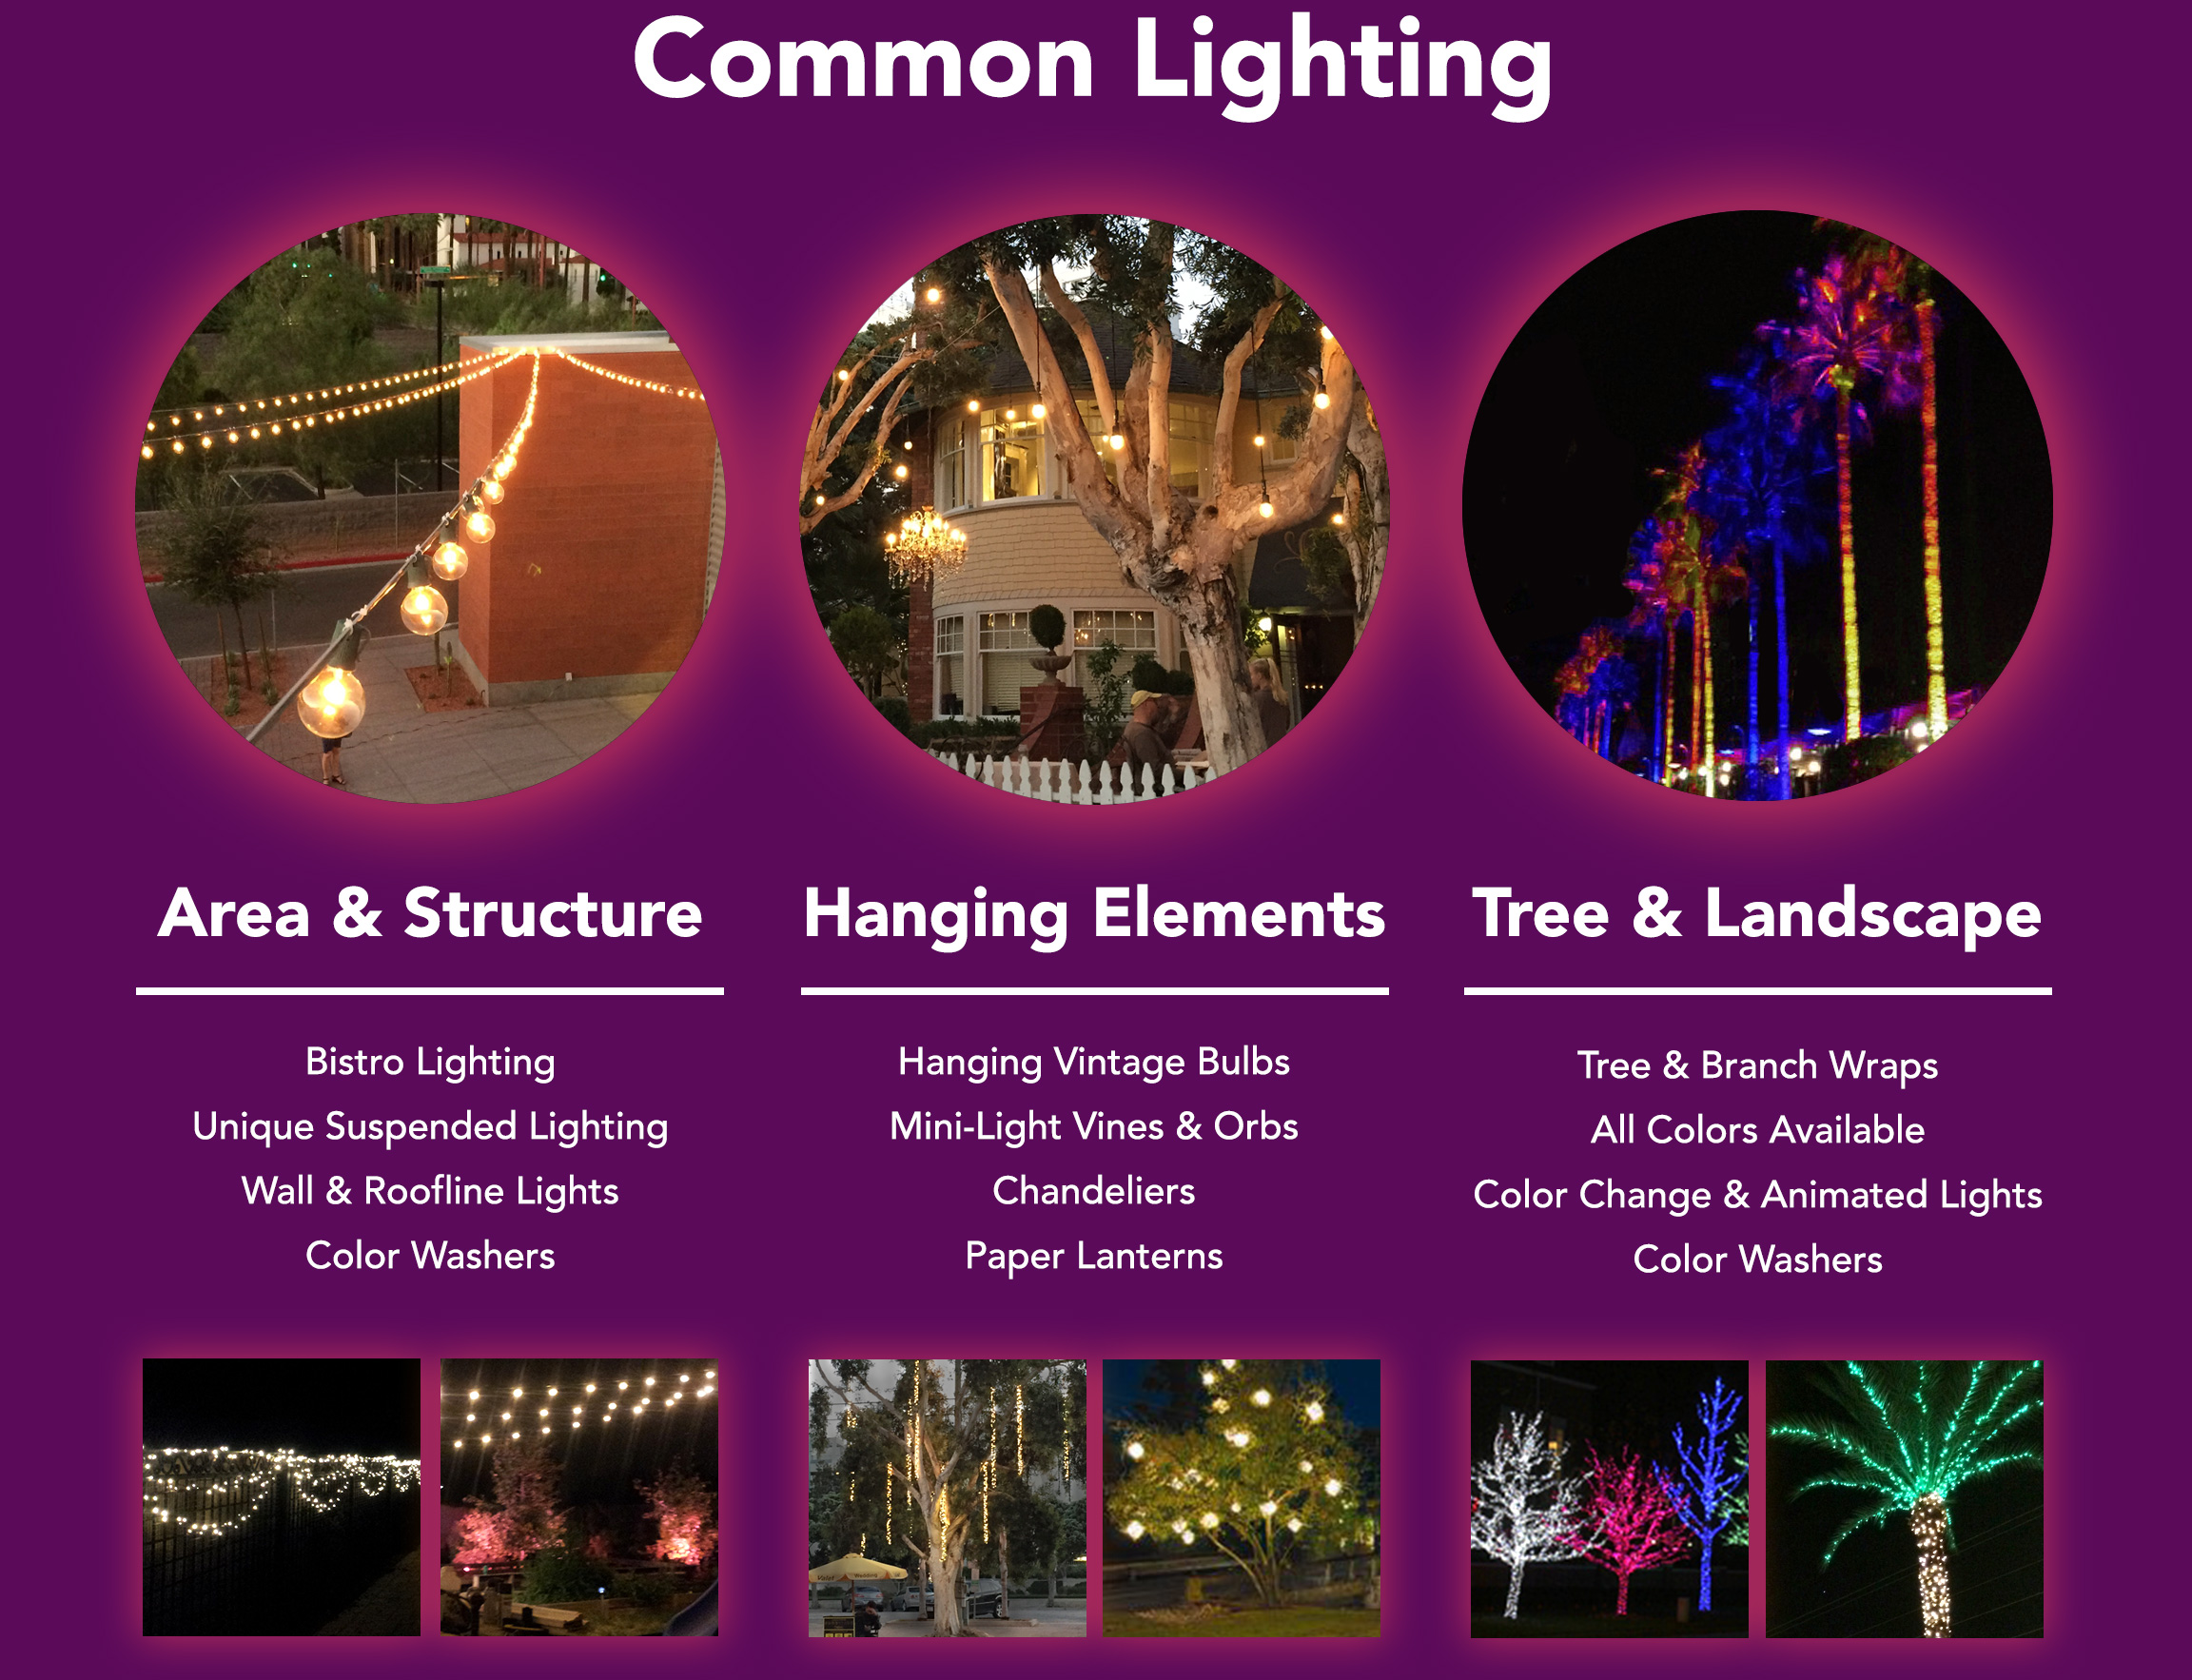 Decorative lighting for Structures, Landscaping, and Areas. Use color to enhance the ambient light and better define your look. Bistro Lights, Roofline Lighting, Color Washers, Tree Wraps, Canopy Lighting, Color Uplighting, RGB LED Flood Lamps, Tree Mounted Lighting, Color Change LED Lights